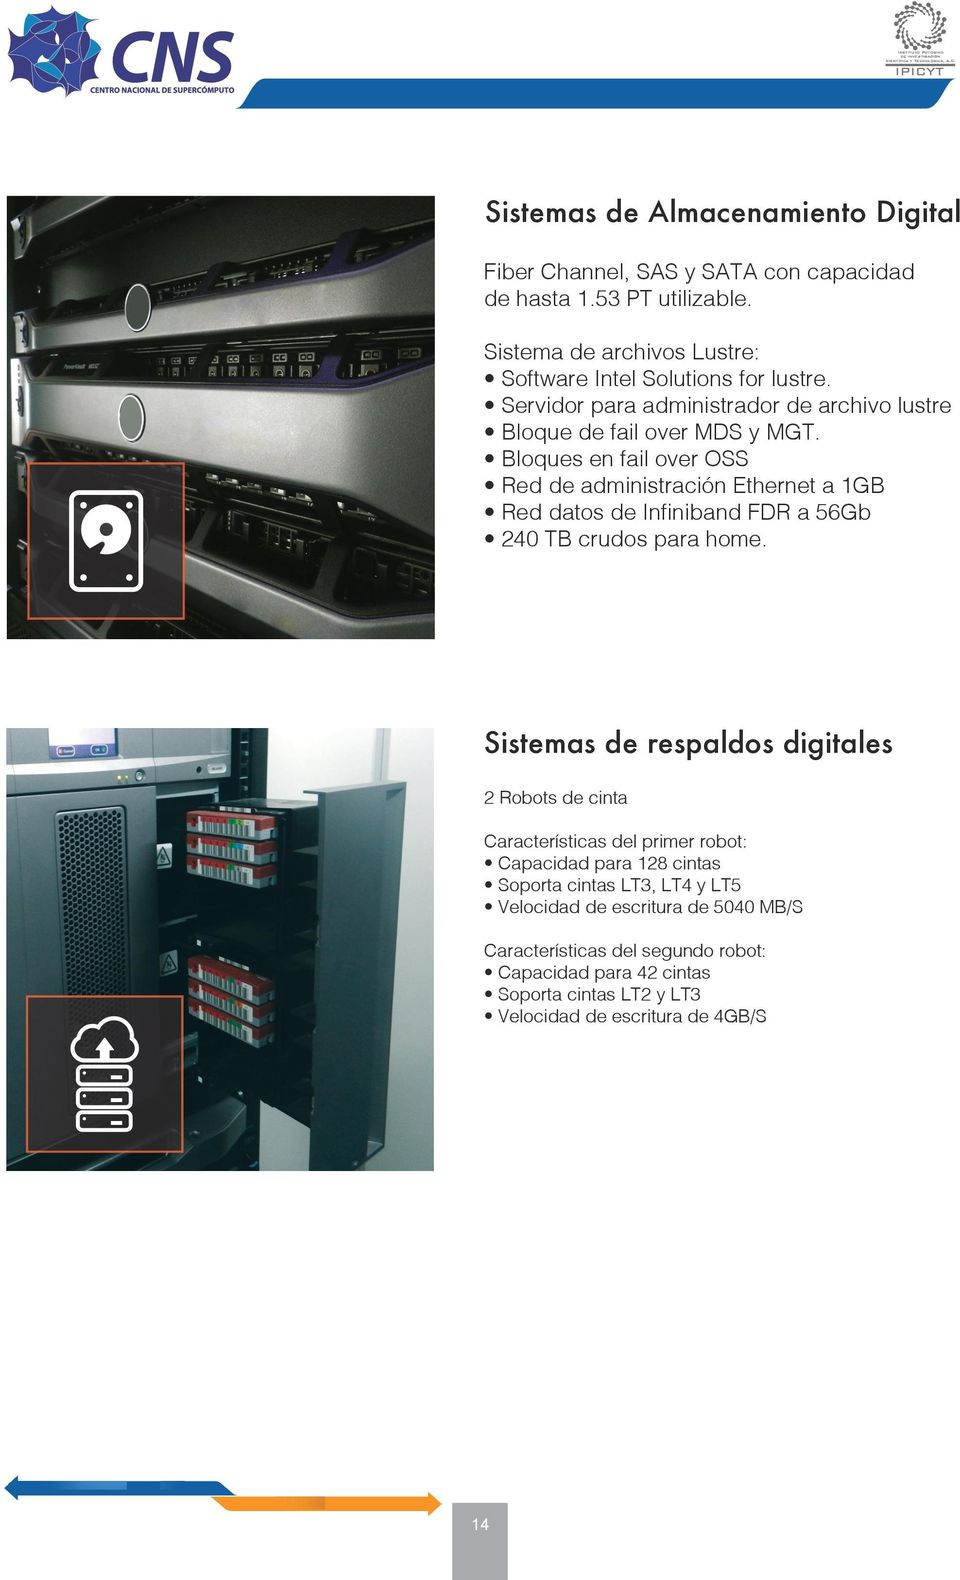 Bloques en fail over OSS Red de administración Ethernet a 1GB Red datos de Infiniband FDR a 56Gb 240 TB crudos para home.